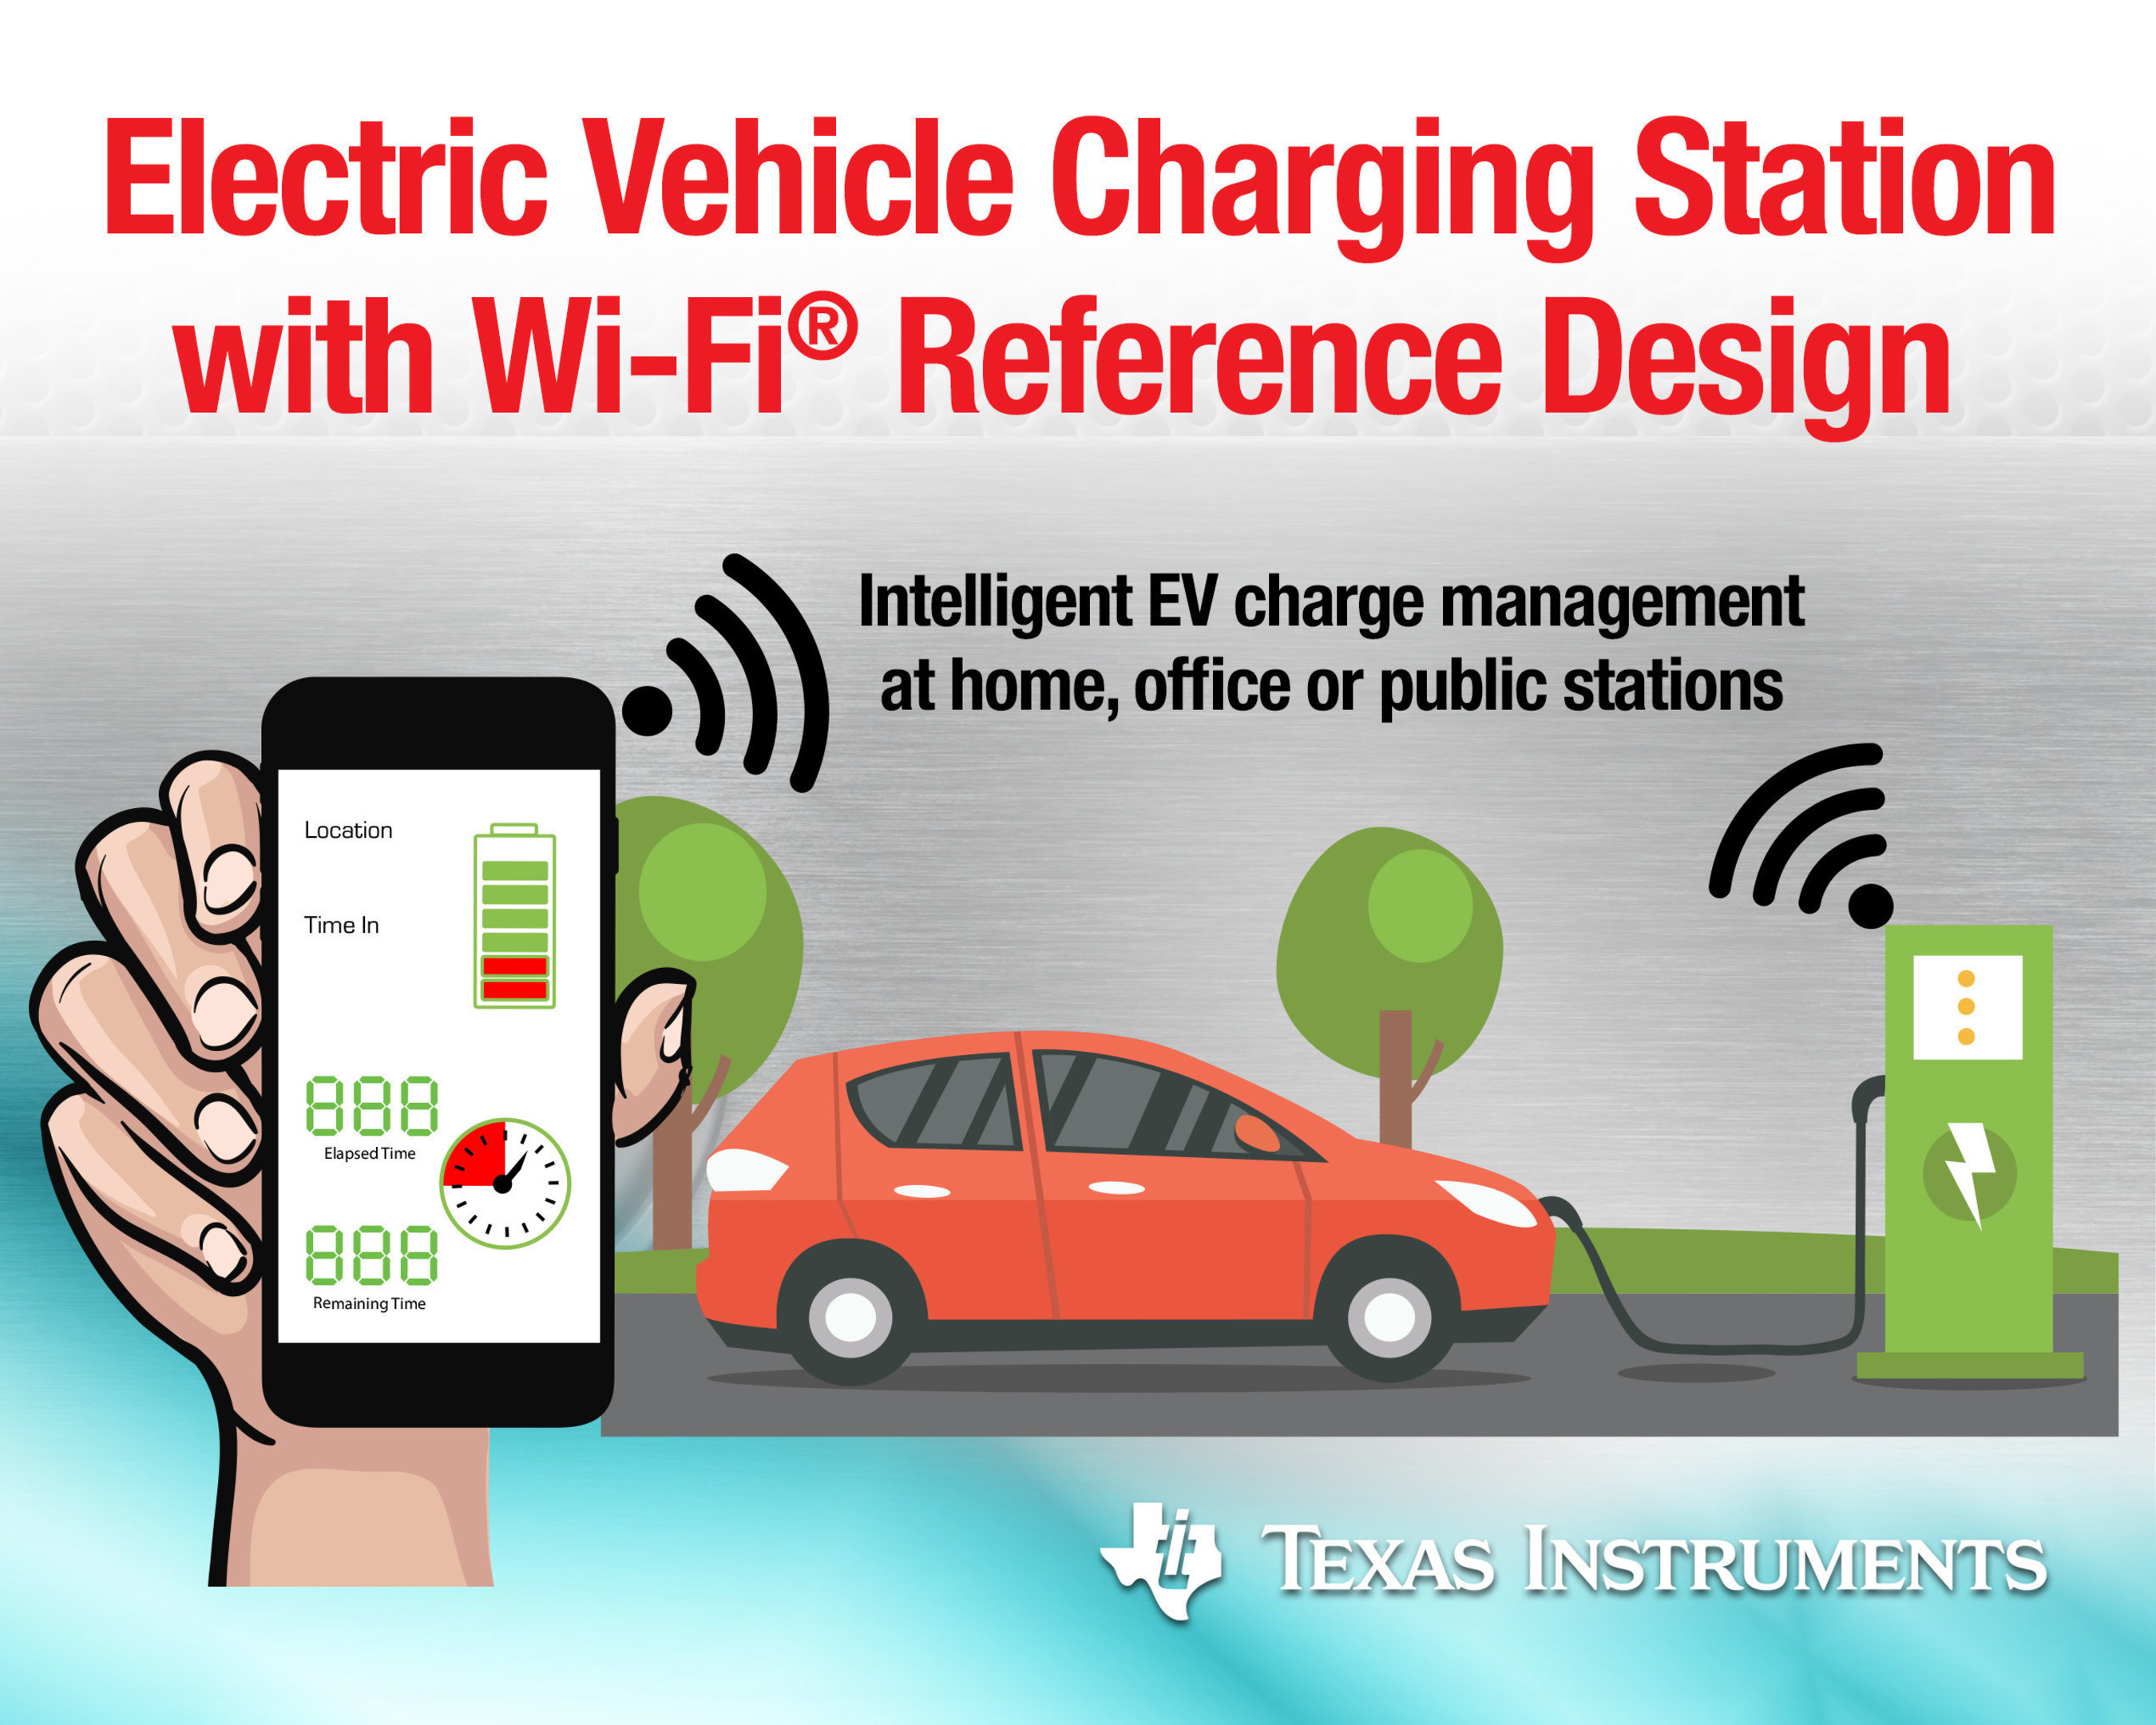 Texas Instruments adds Wi-Fi capability to EV charging stations with new reference design.